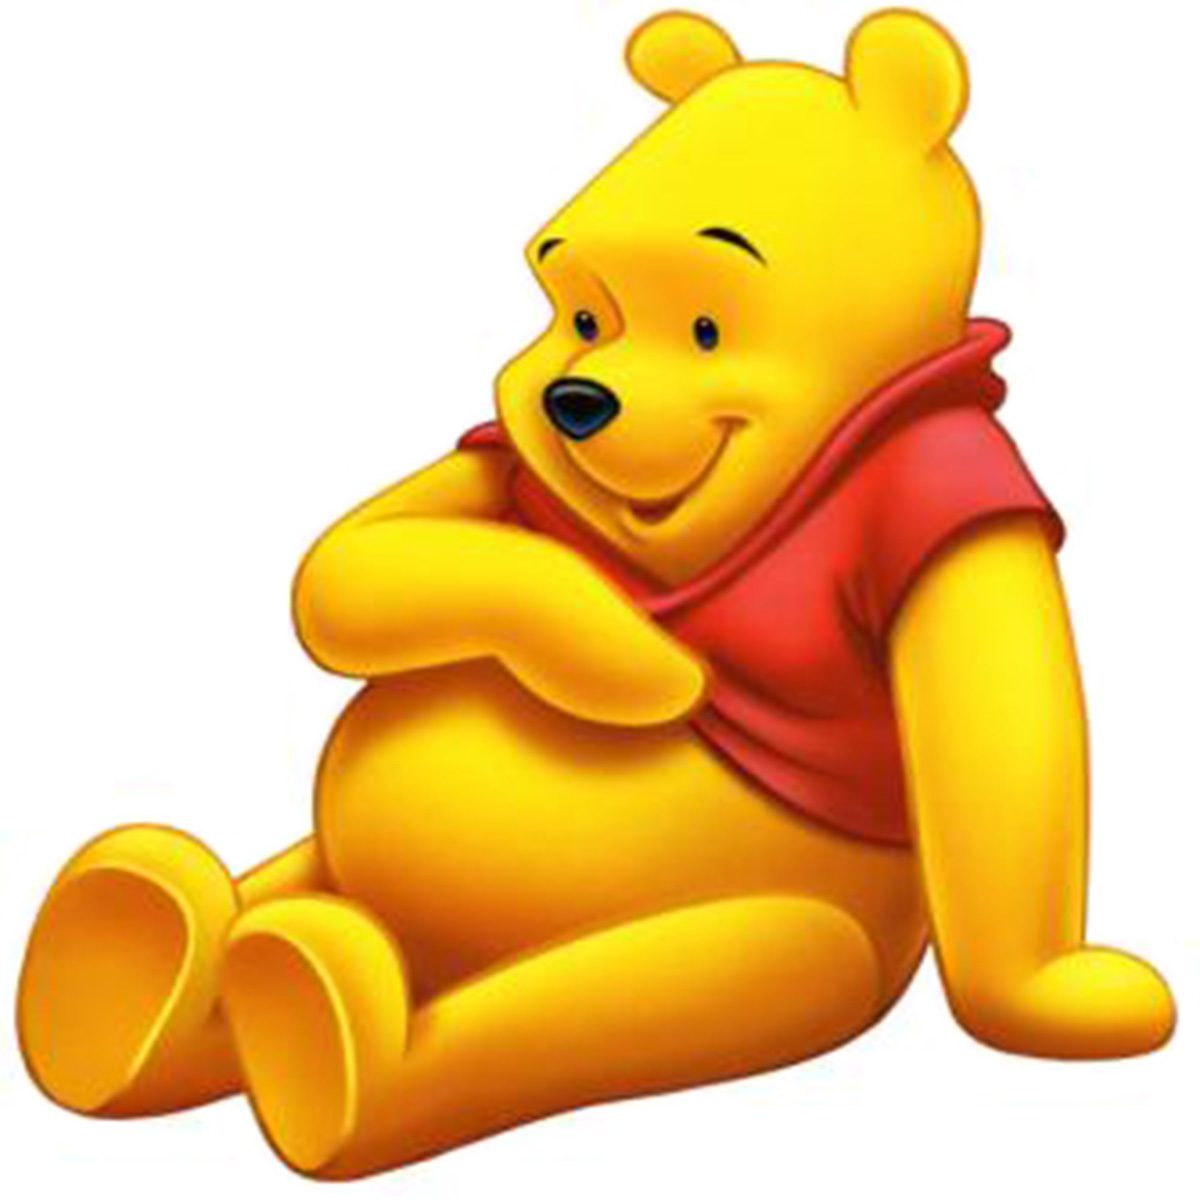 Winnie The Pooh Pictures To Download Free  Kids Online. Country Song Quotes Yahoo Answers. Friday Quotes With Images. Country Daughter Quotes. Harry Potter Quotes Family. Christmas Quotes For Your Love. Family Quotes Antigone. Country Progress Quotes. You Jokes Quotes